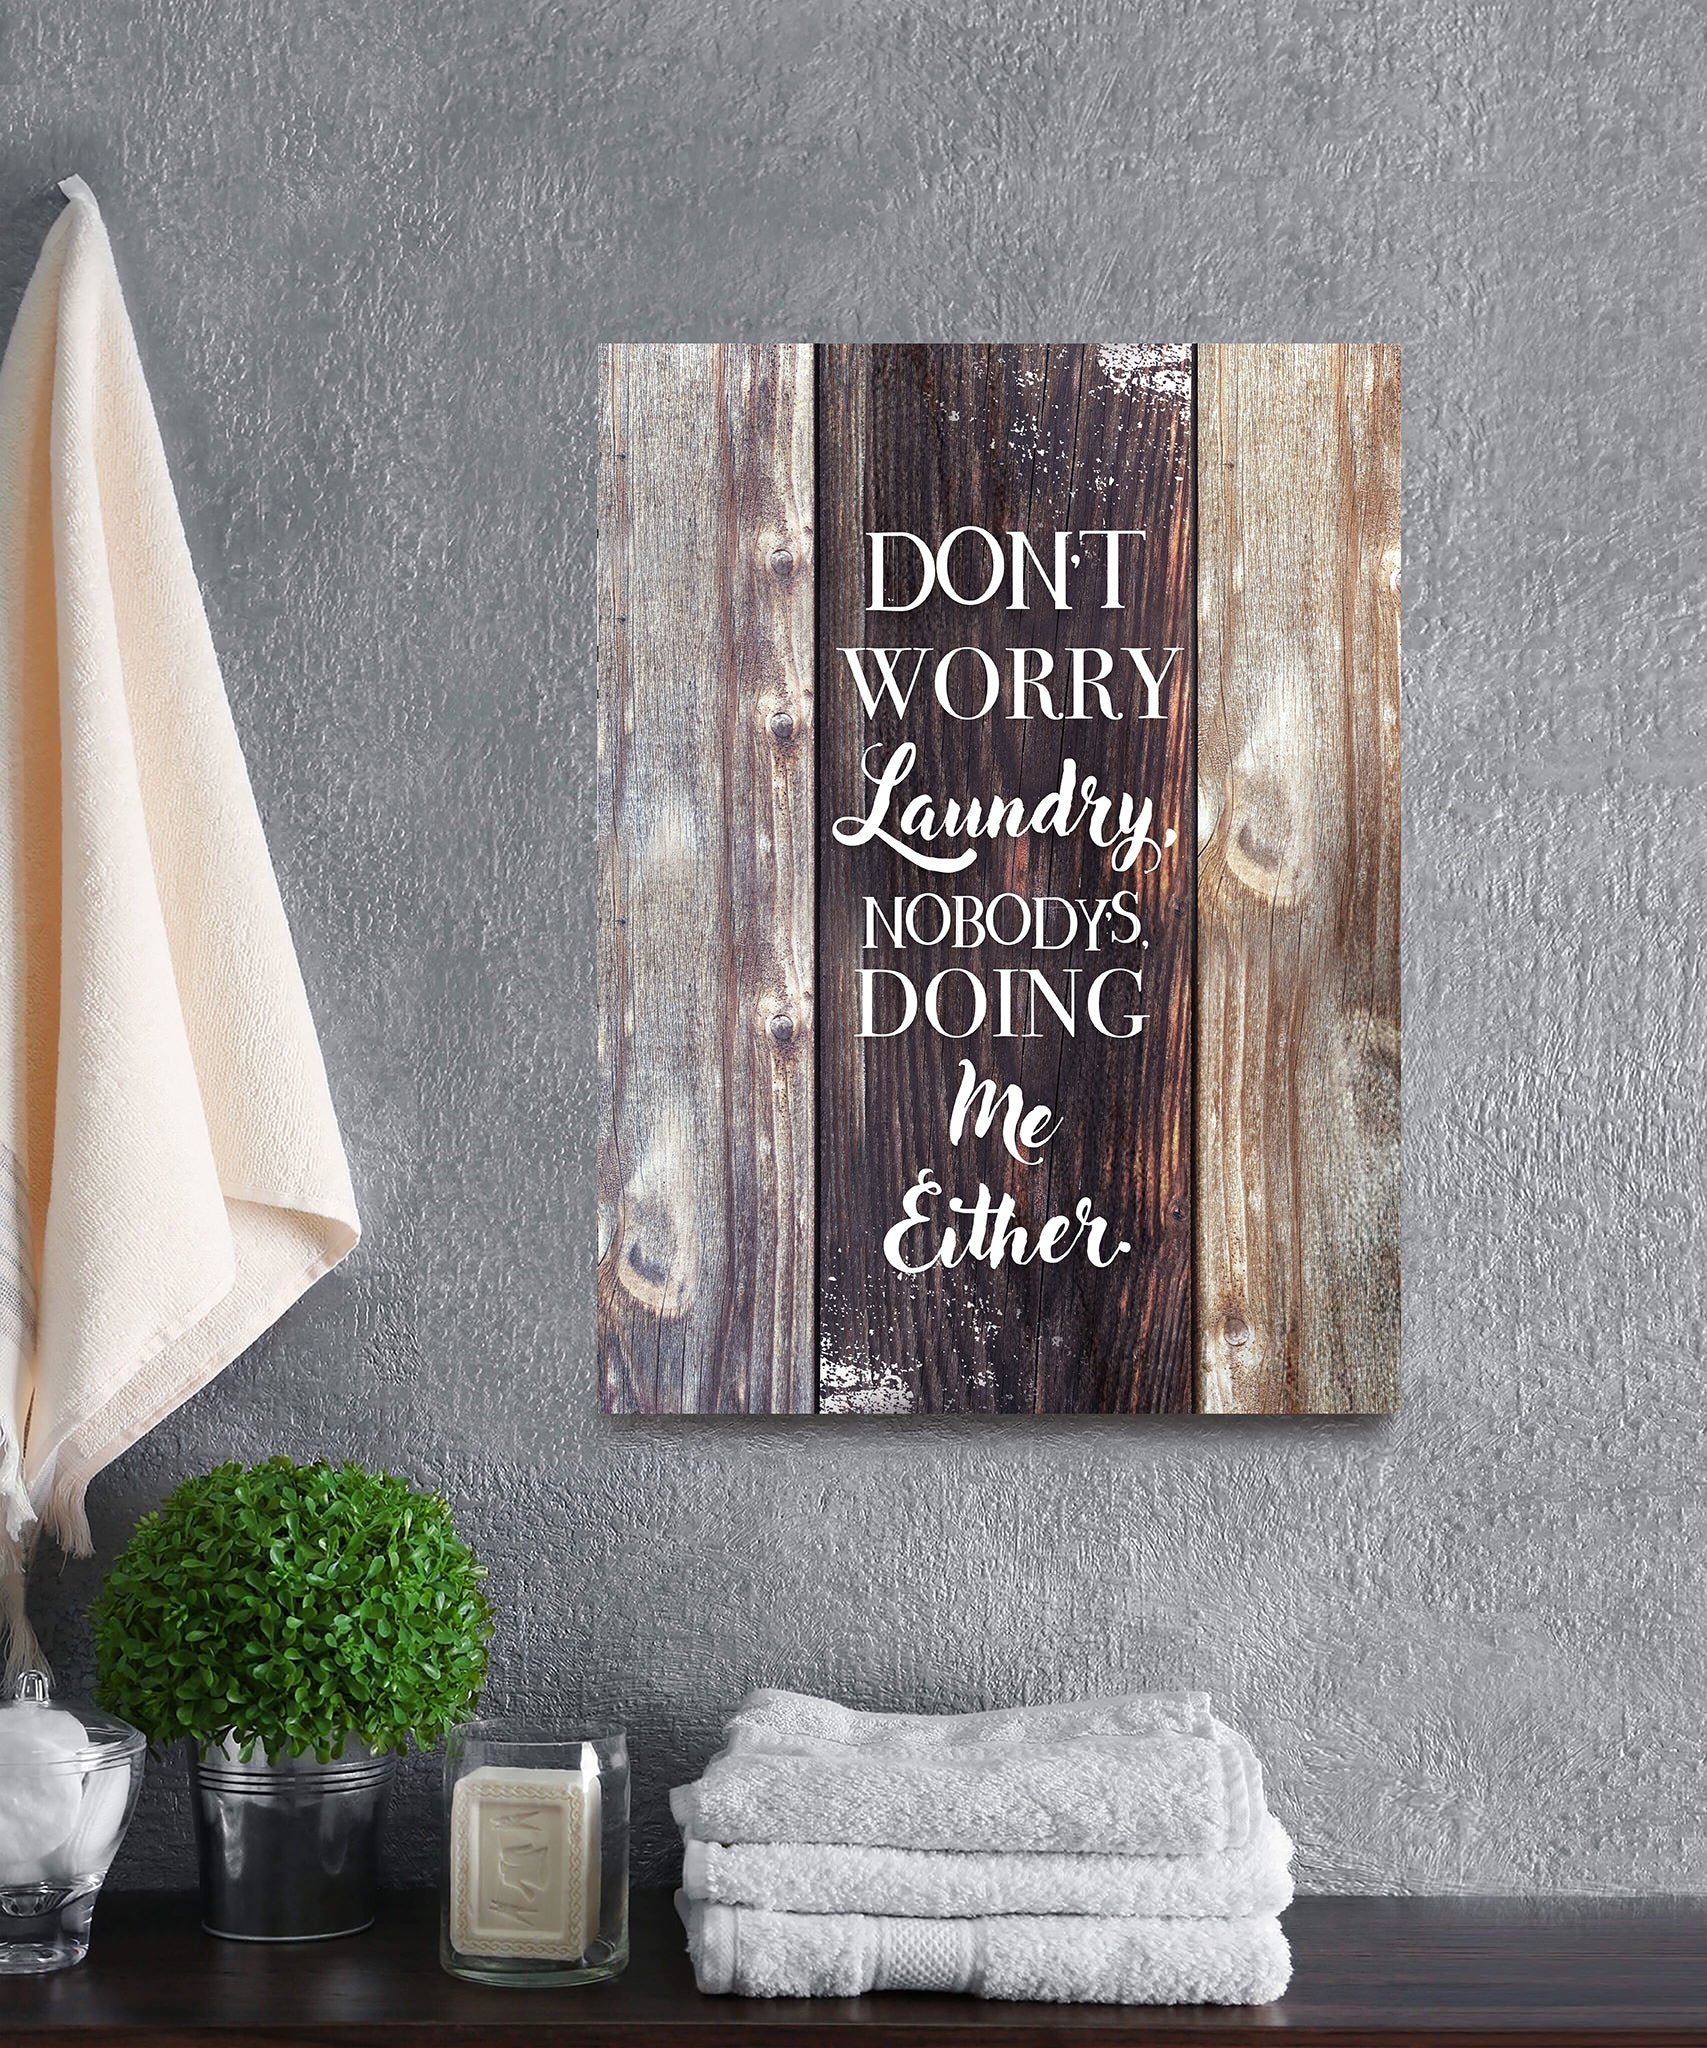 Laundry Room Wall Art: Don't Worry Laundry (Wood Frame Ready To Hang)